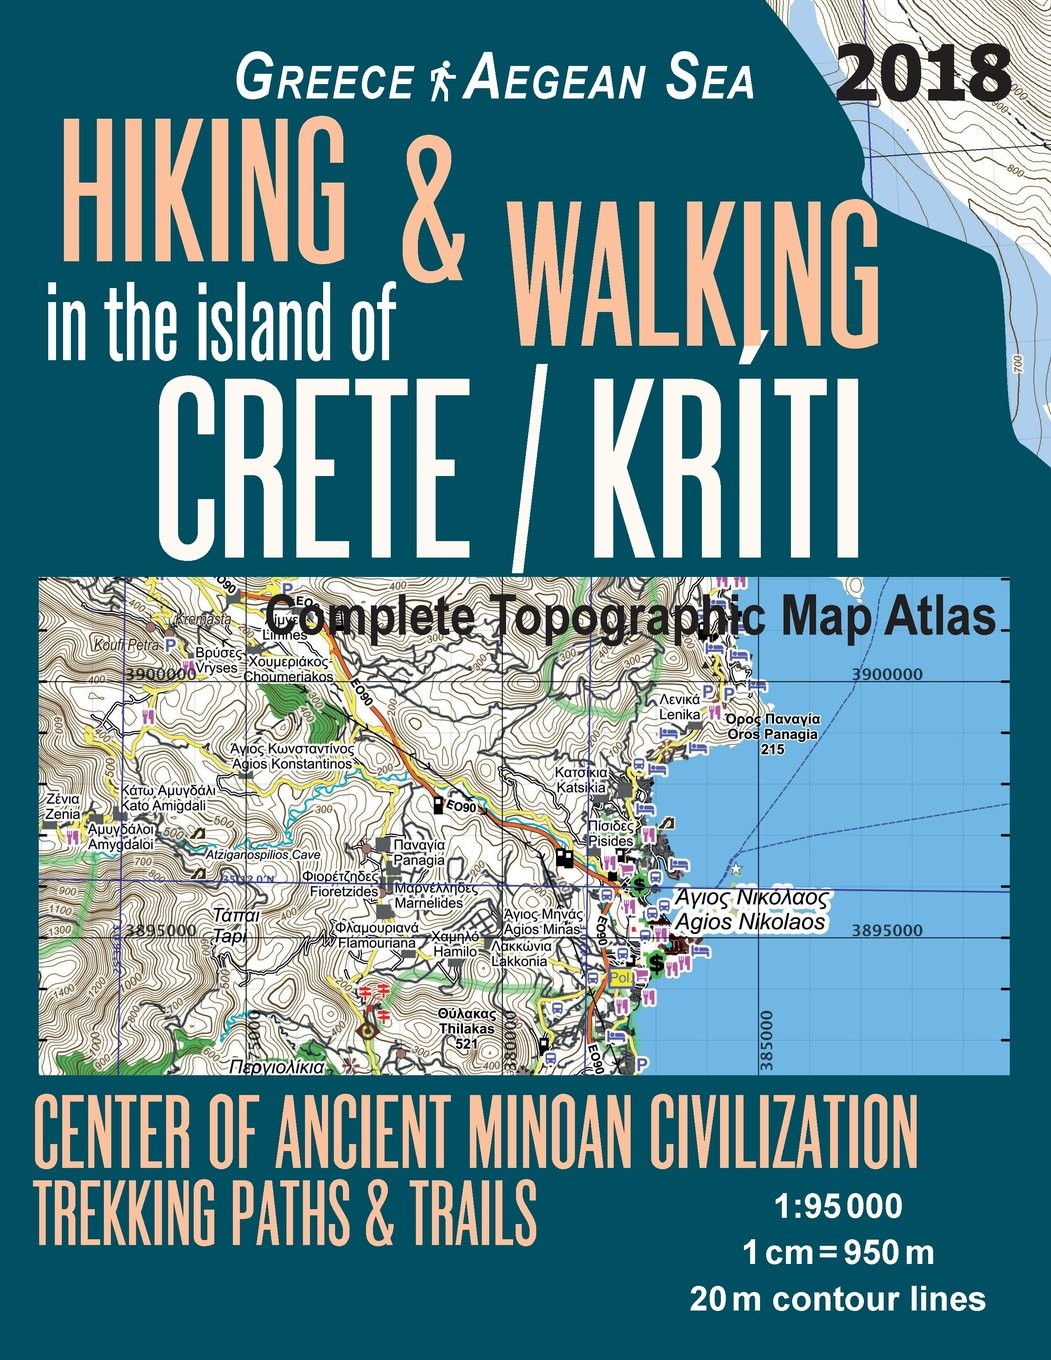 Topographic Map Of Ancient Greece.Hiking Walking In The Island Of Crete Kriti Complete Topographic